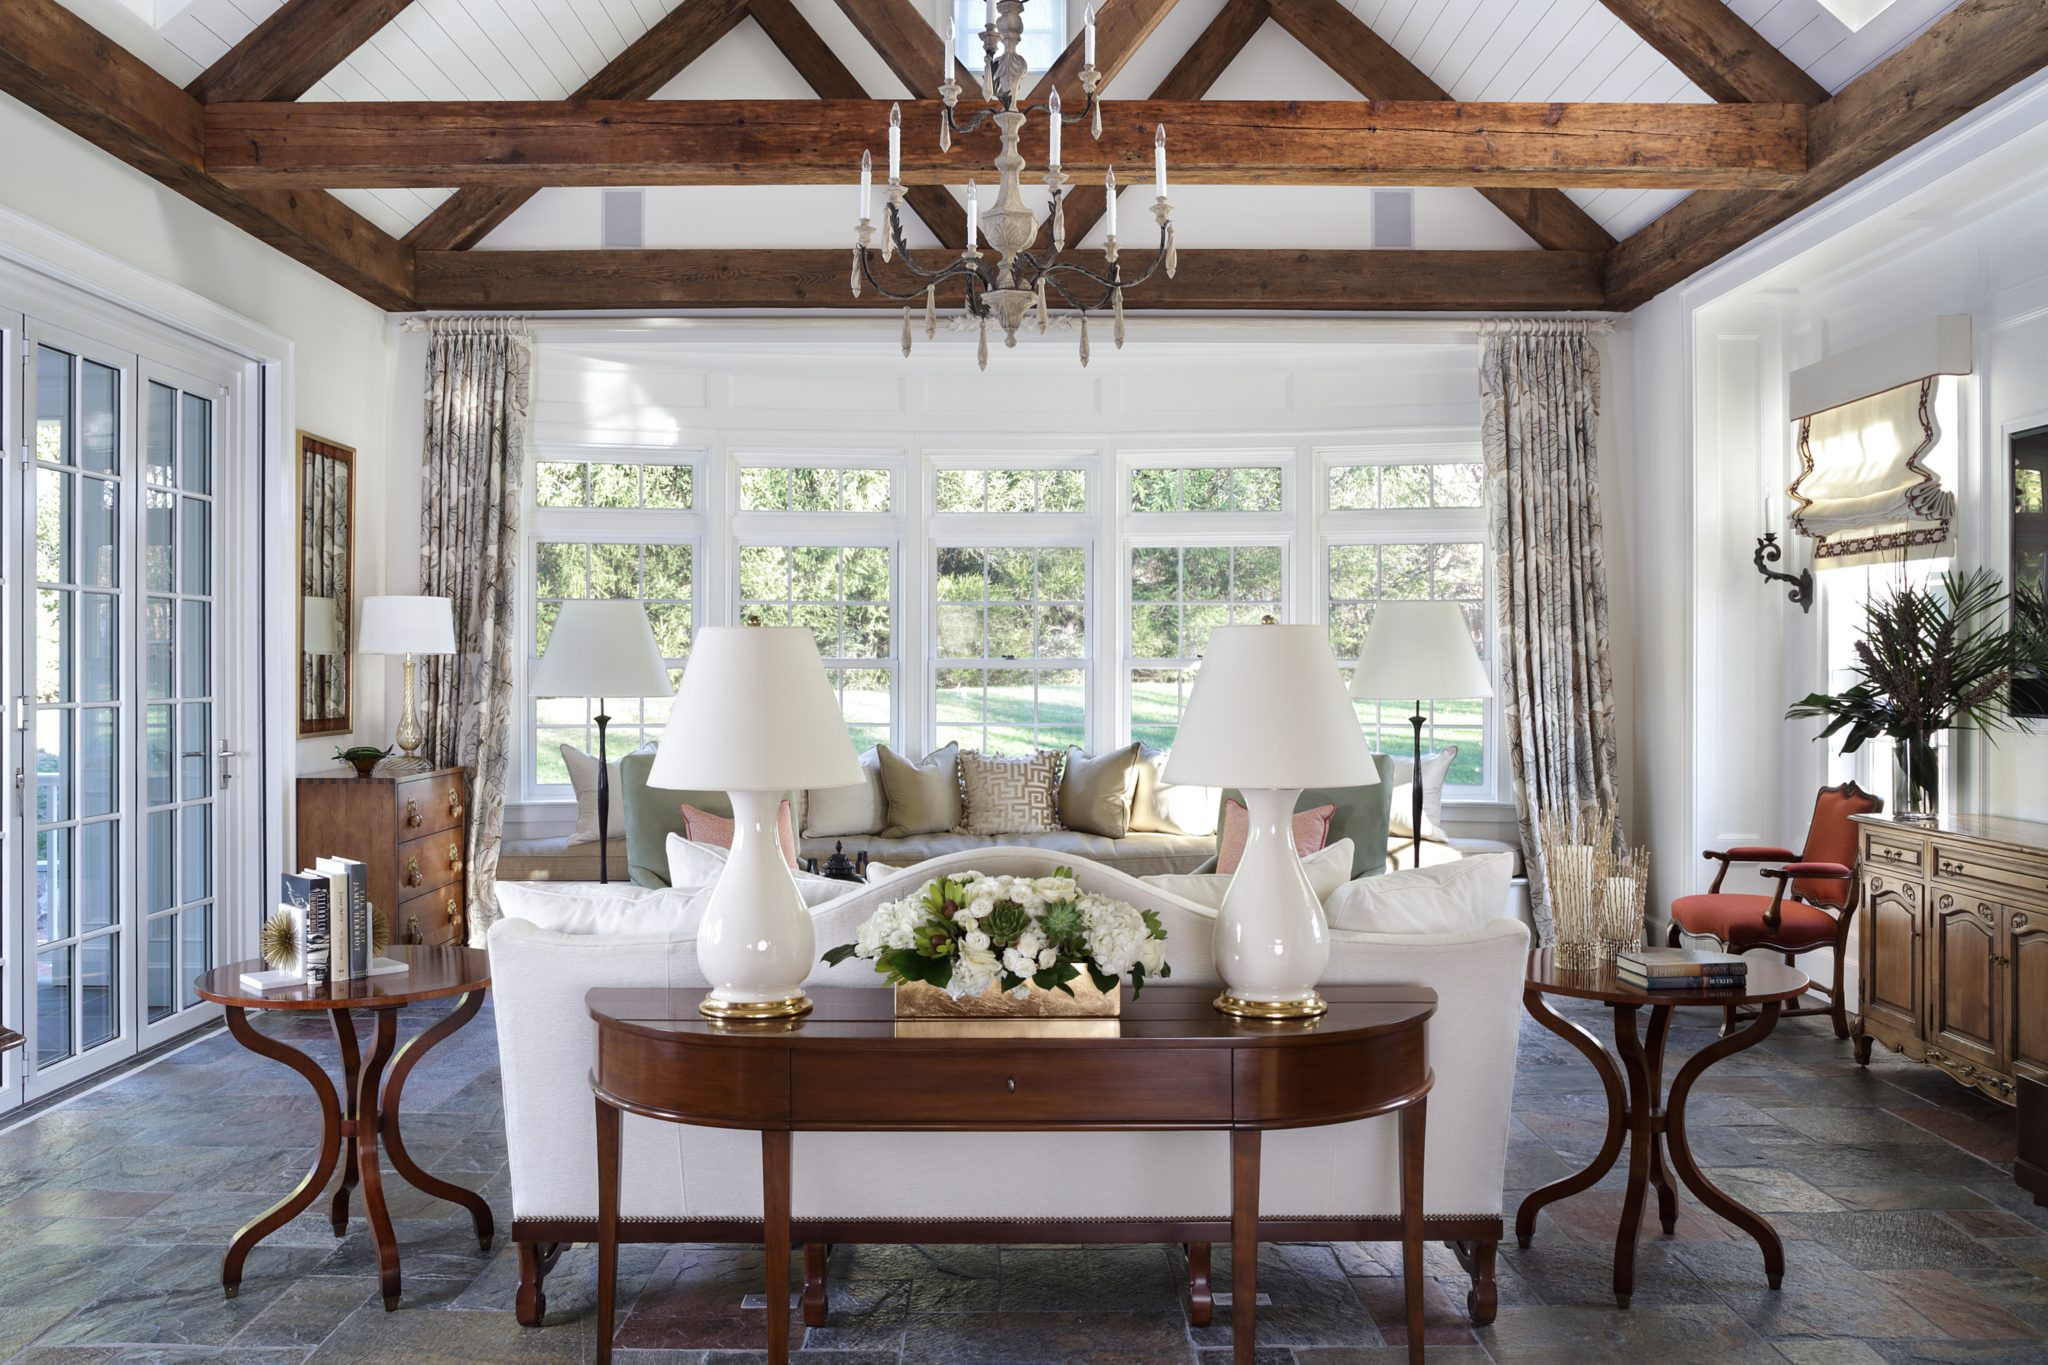 Sunroom featuring claved slate floor, reclaimed beams, window seat, nano door to dining area by J. Stephens Interiors